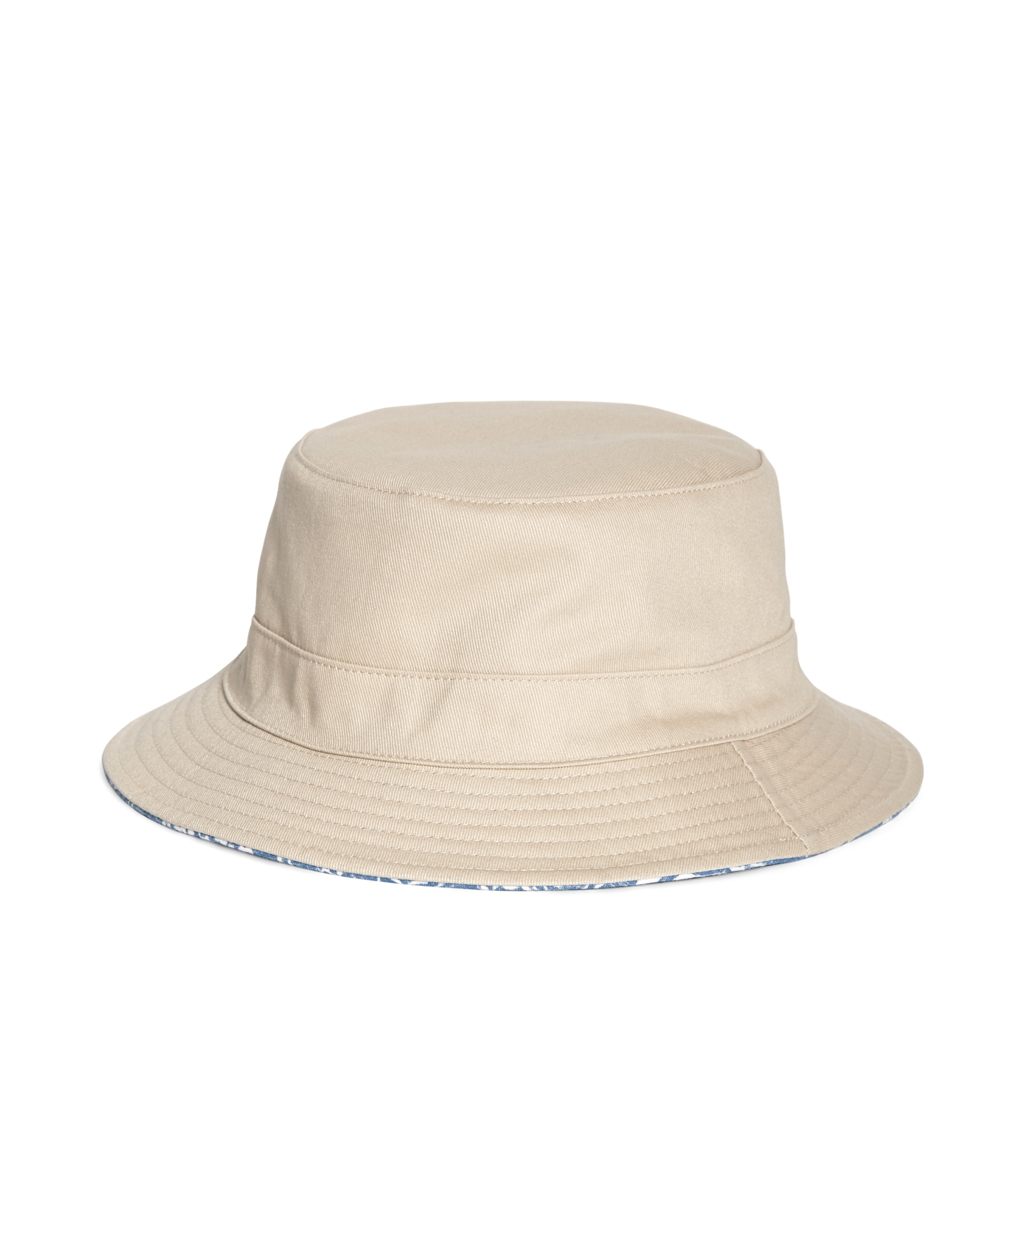 e262ec5b Brooks Brothers Tropical Print Bucket Hat in Blue for Men - Lyst